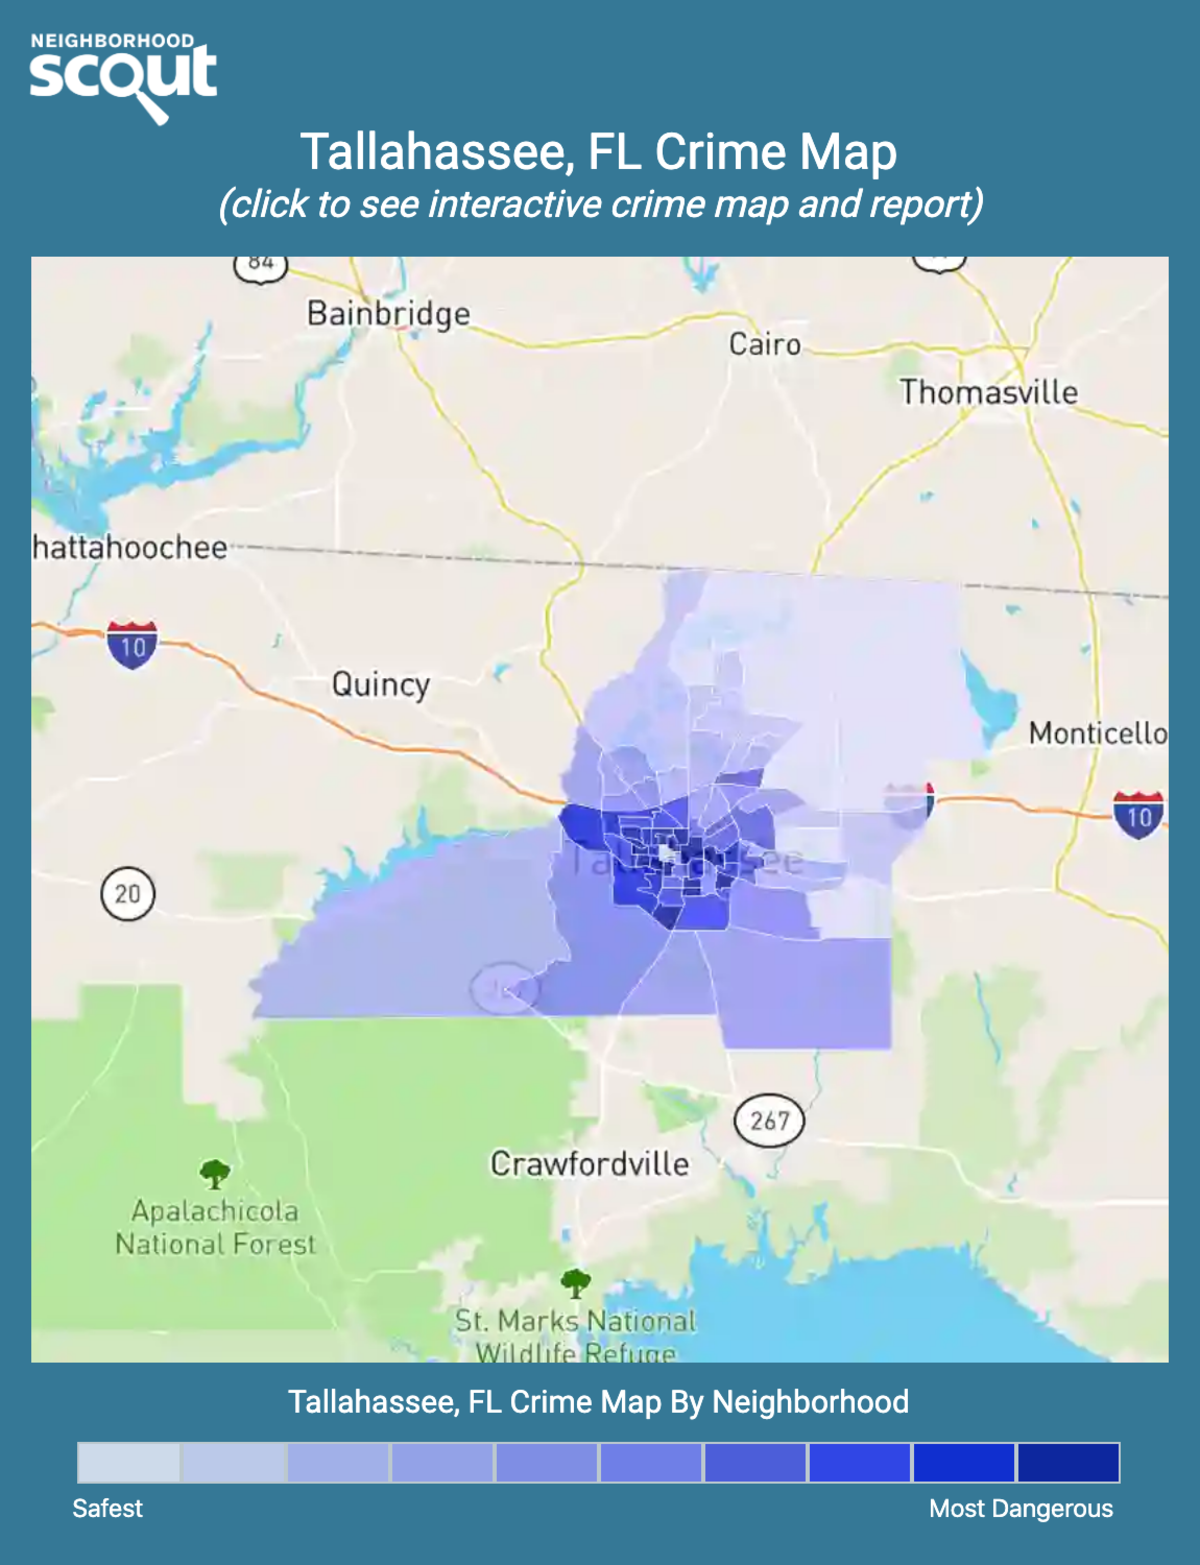 Tallahassee, Florida crime map